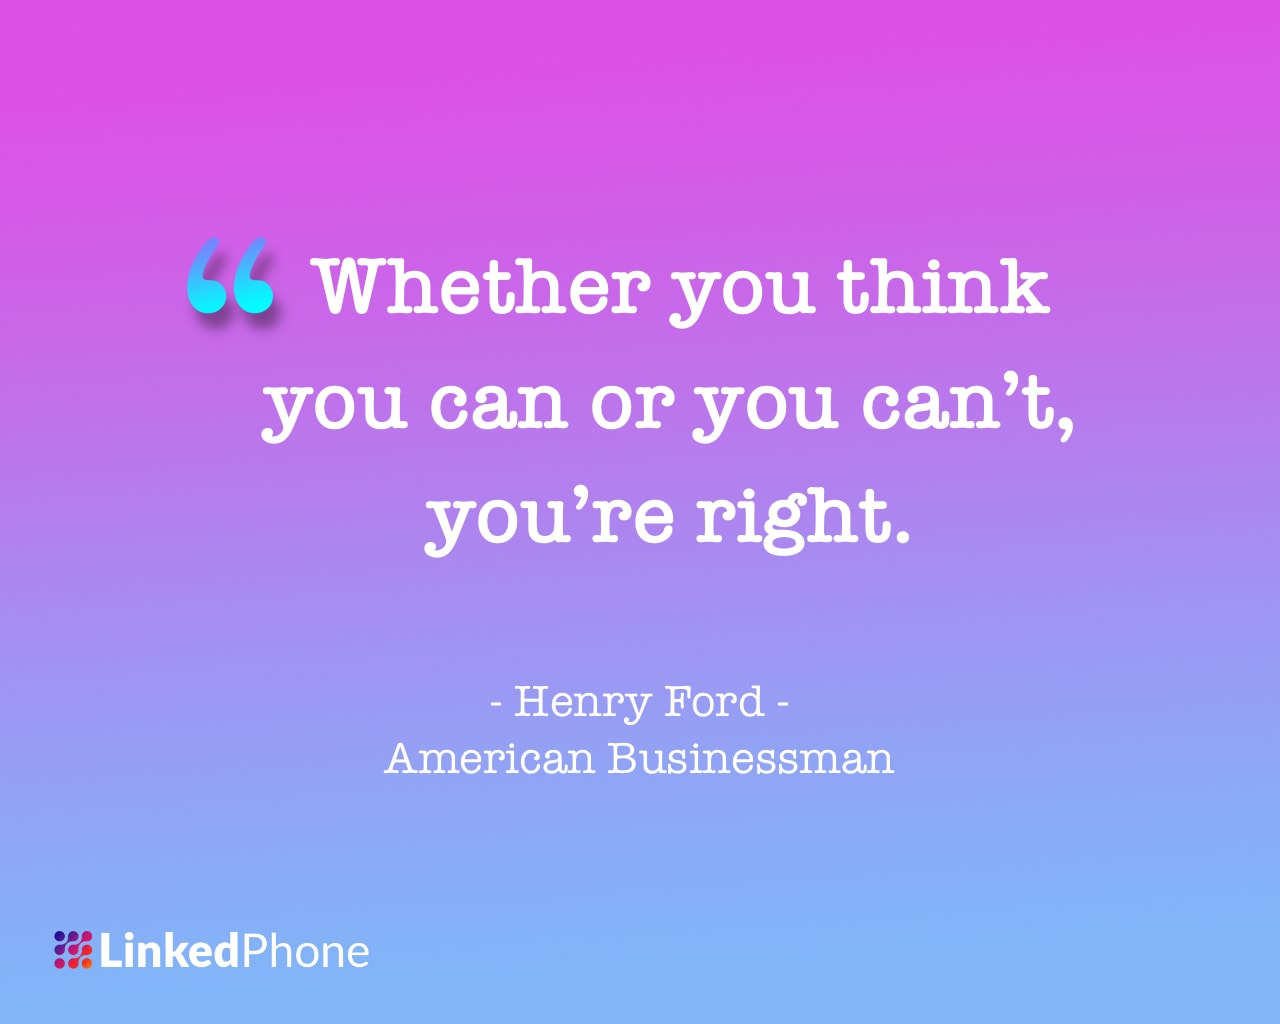 Henry Ford - Motivational Inspirational Quotes and Sayings